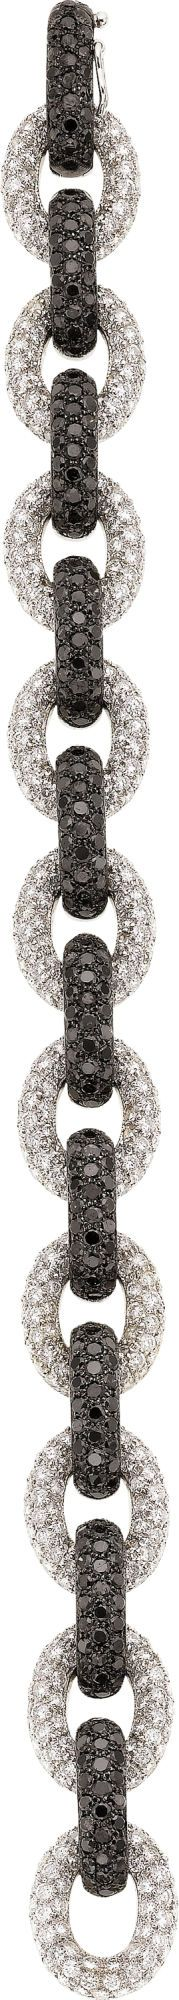 Black and White Diamond, White Gold Bracelet -  by Eli Frei